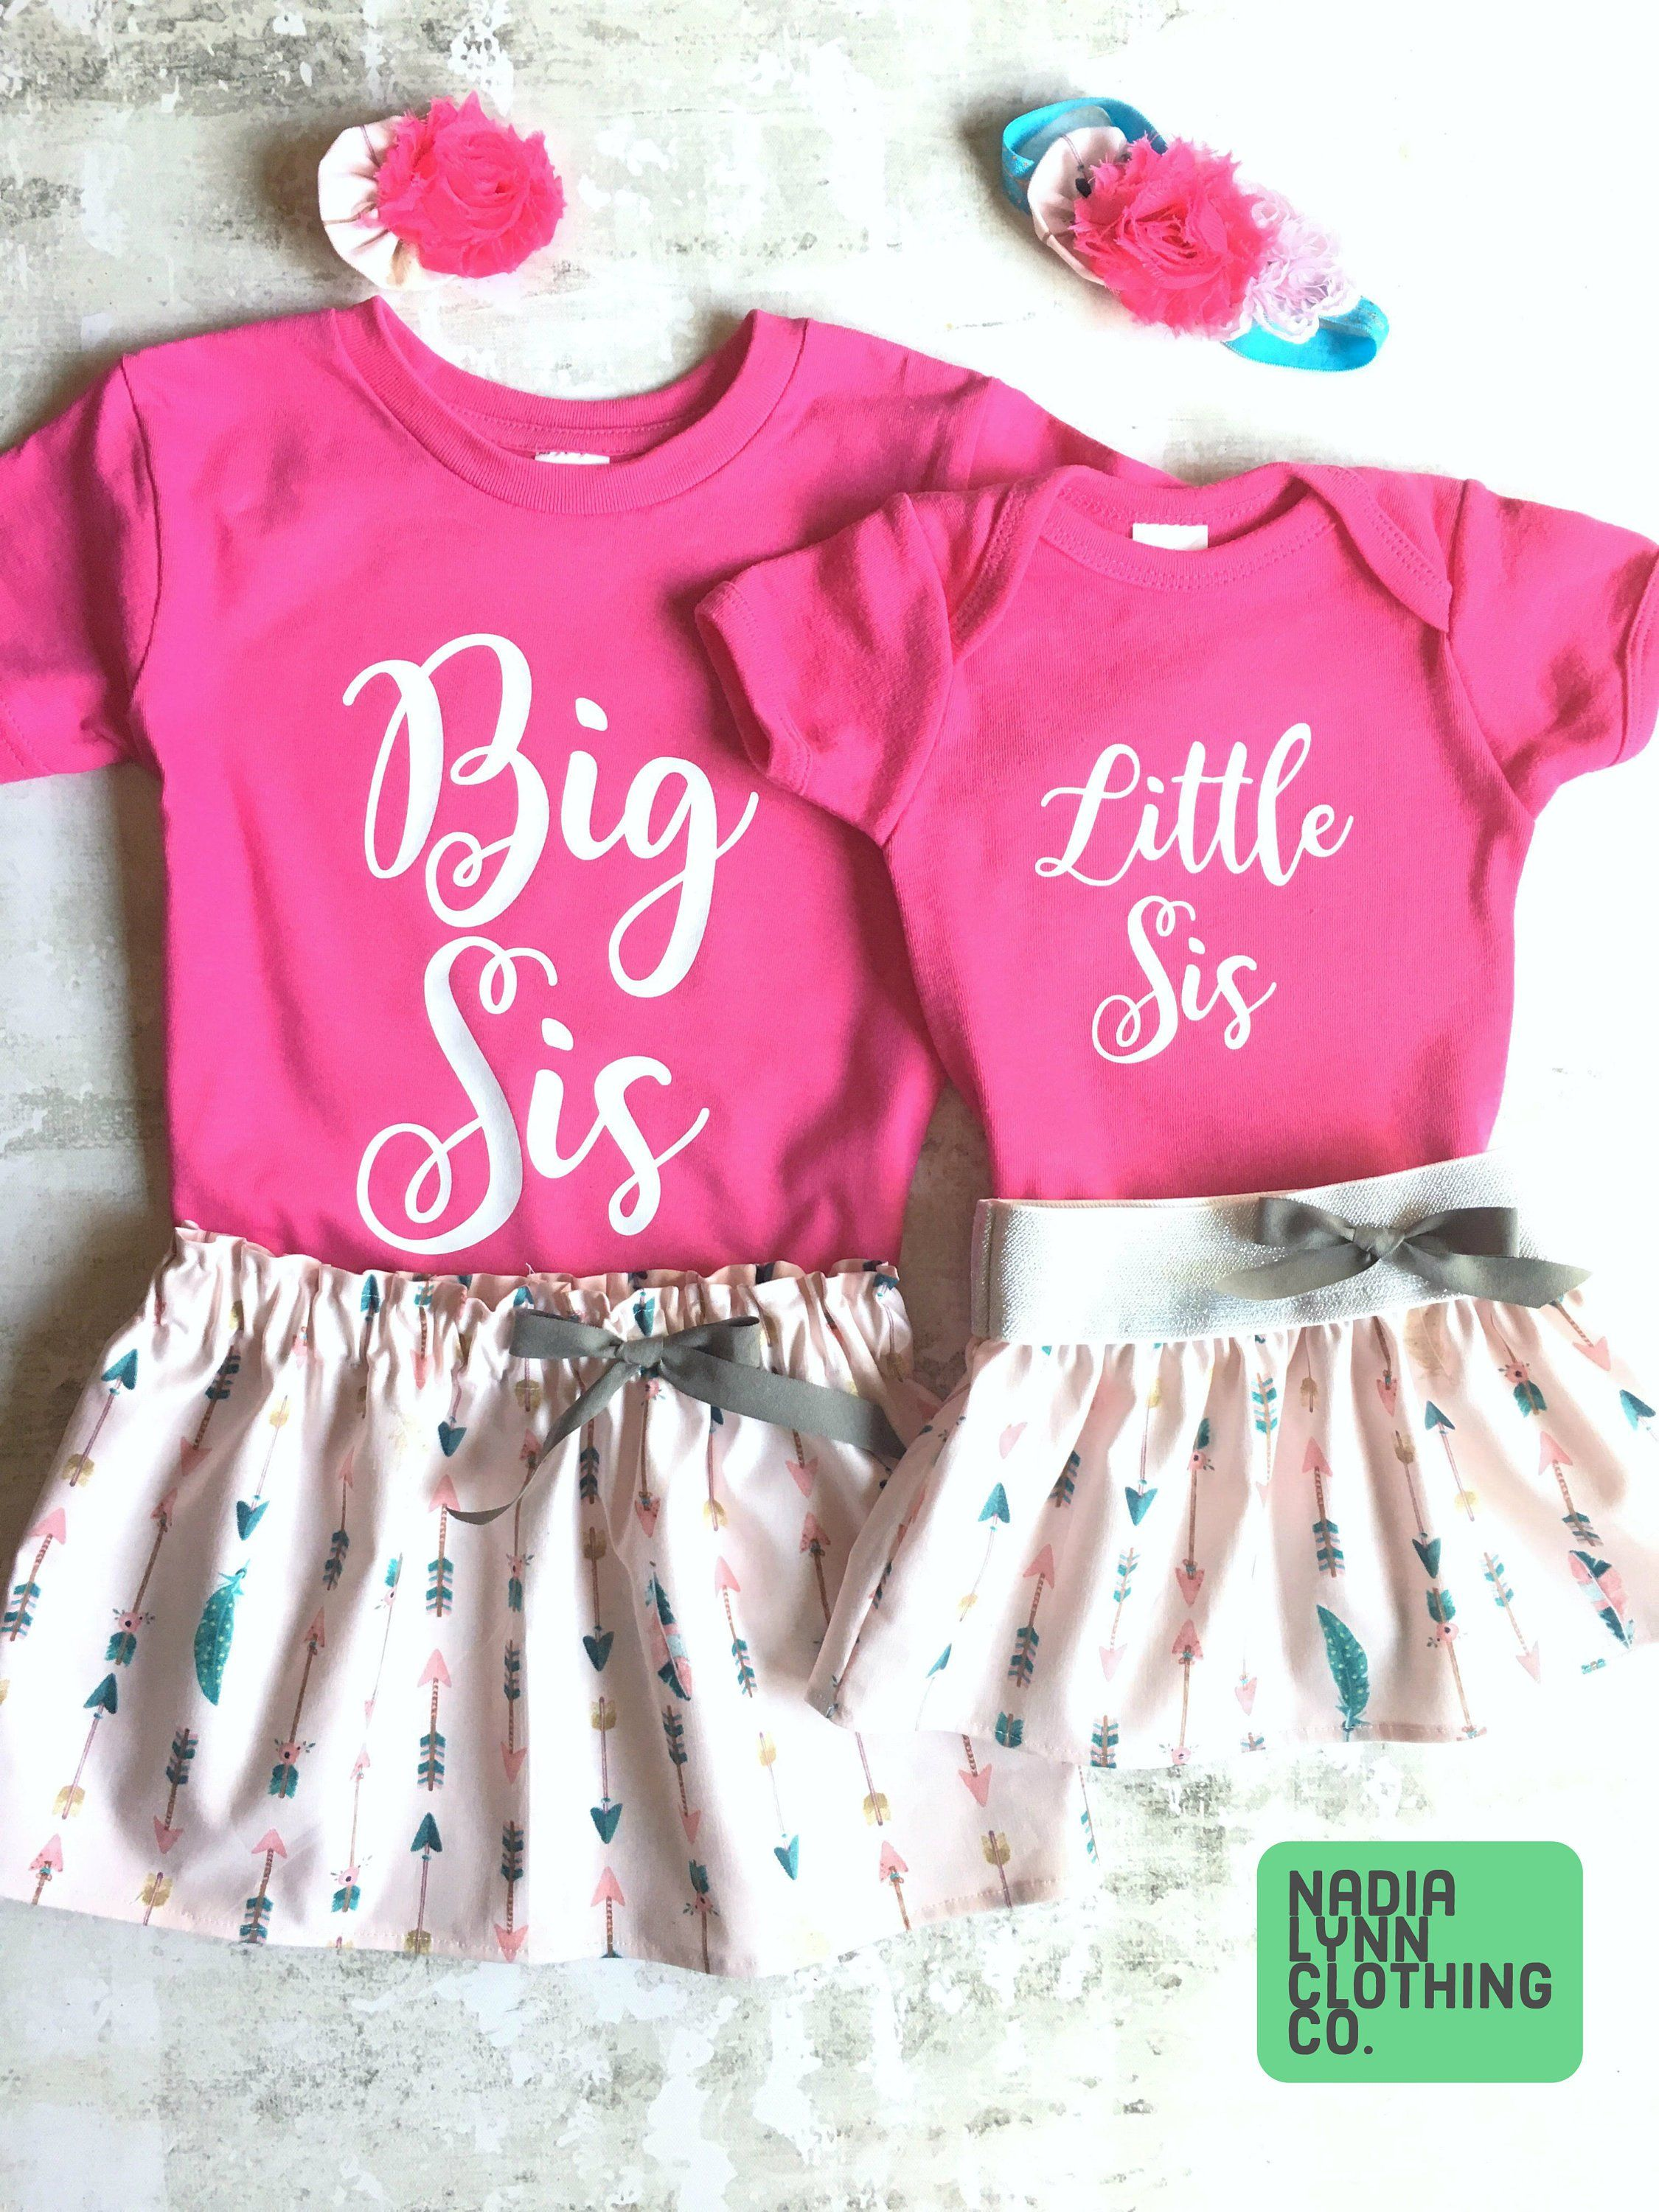 Big Sister Little Sister Outfits Pink And Gray Feather Sisters Matching Outfits Big Sis Little Sis Skirt Sister Outfits Sibling Outfits Baby Kids Clothes